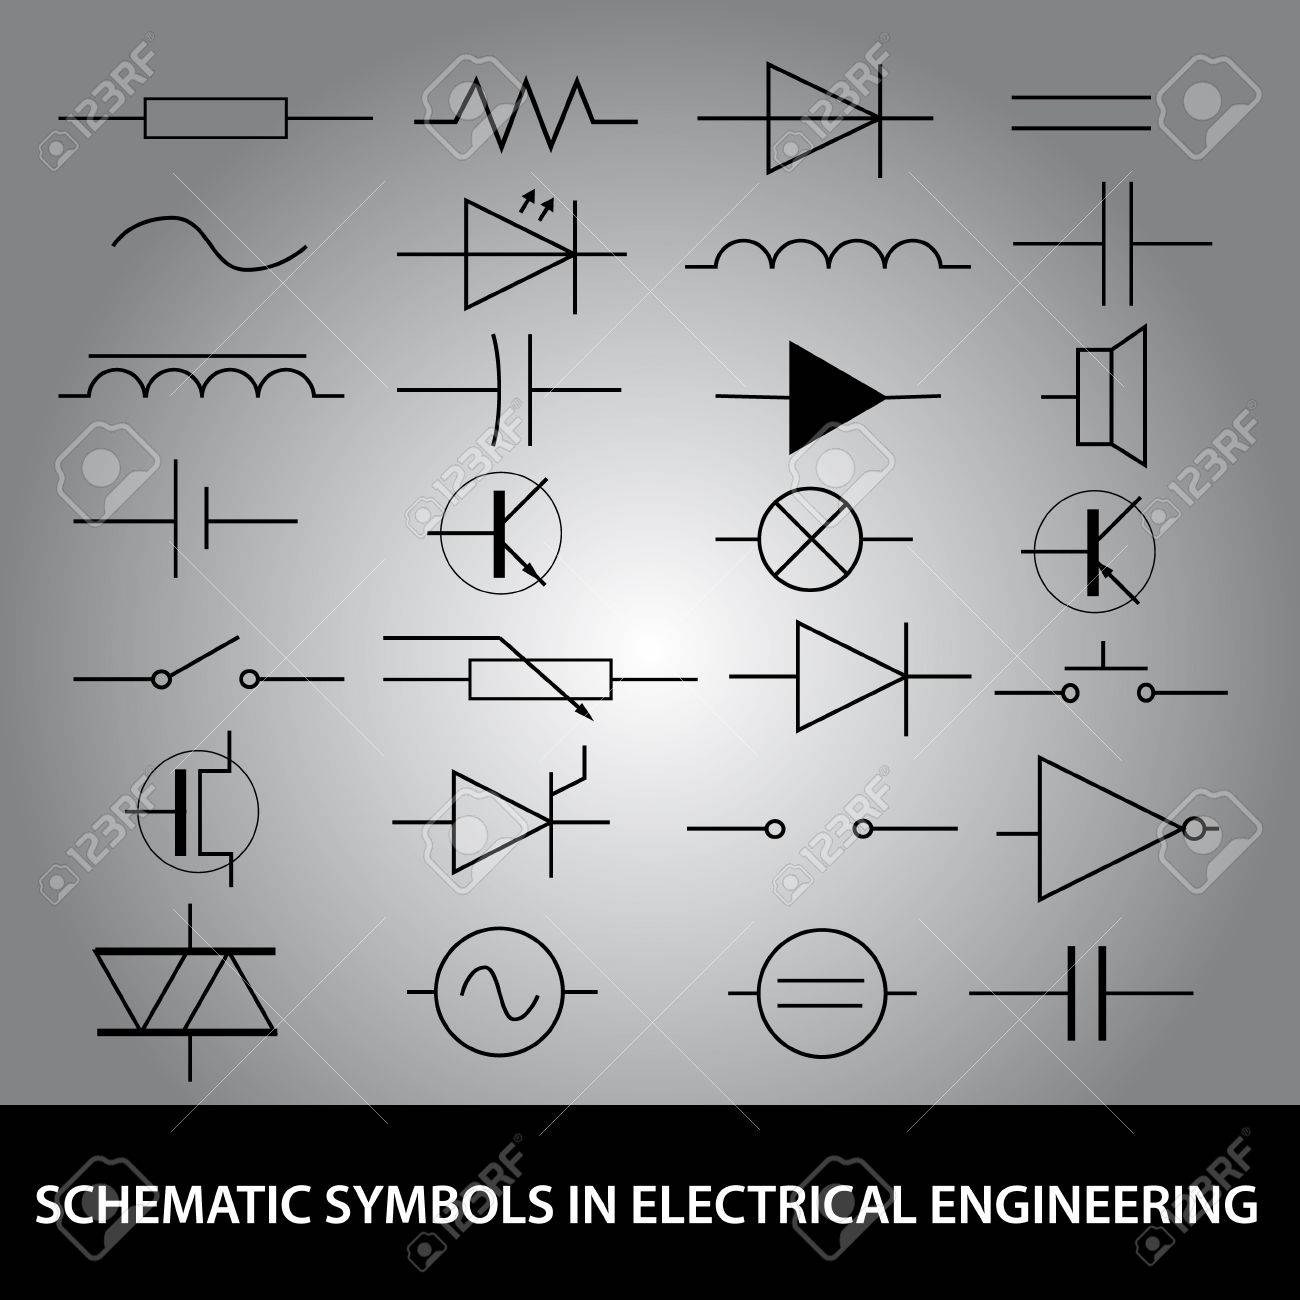 schematic symbols in electrical engineering icon set royalty vector schematic symbols in electrical engineering icon set